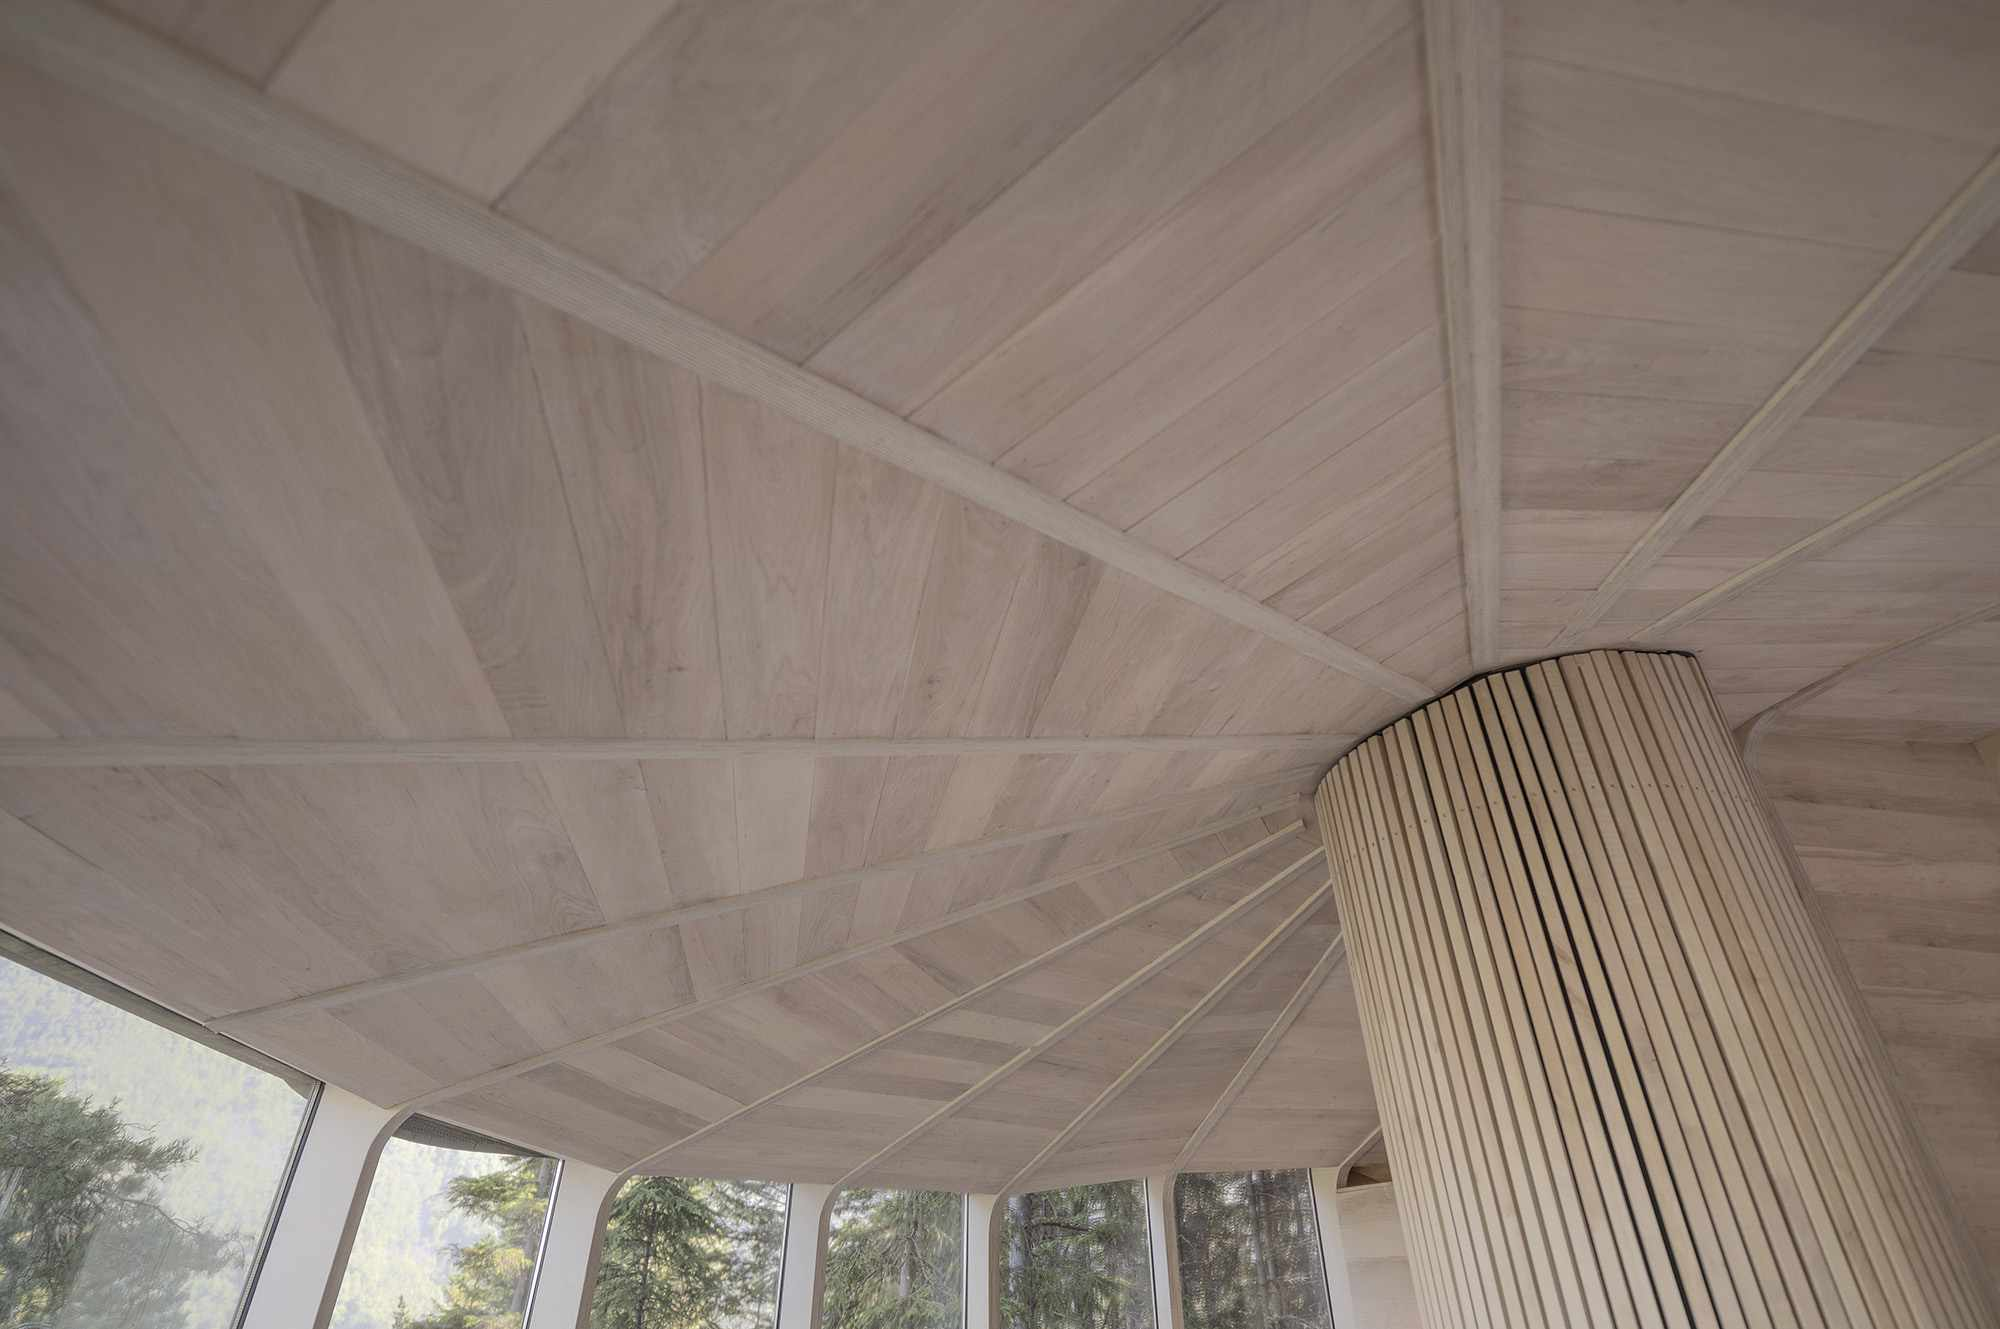 Woodnest treehouse cabin by Helen & Hard Architects radial ceiling